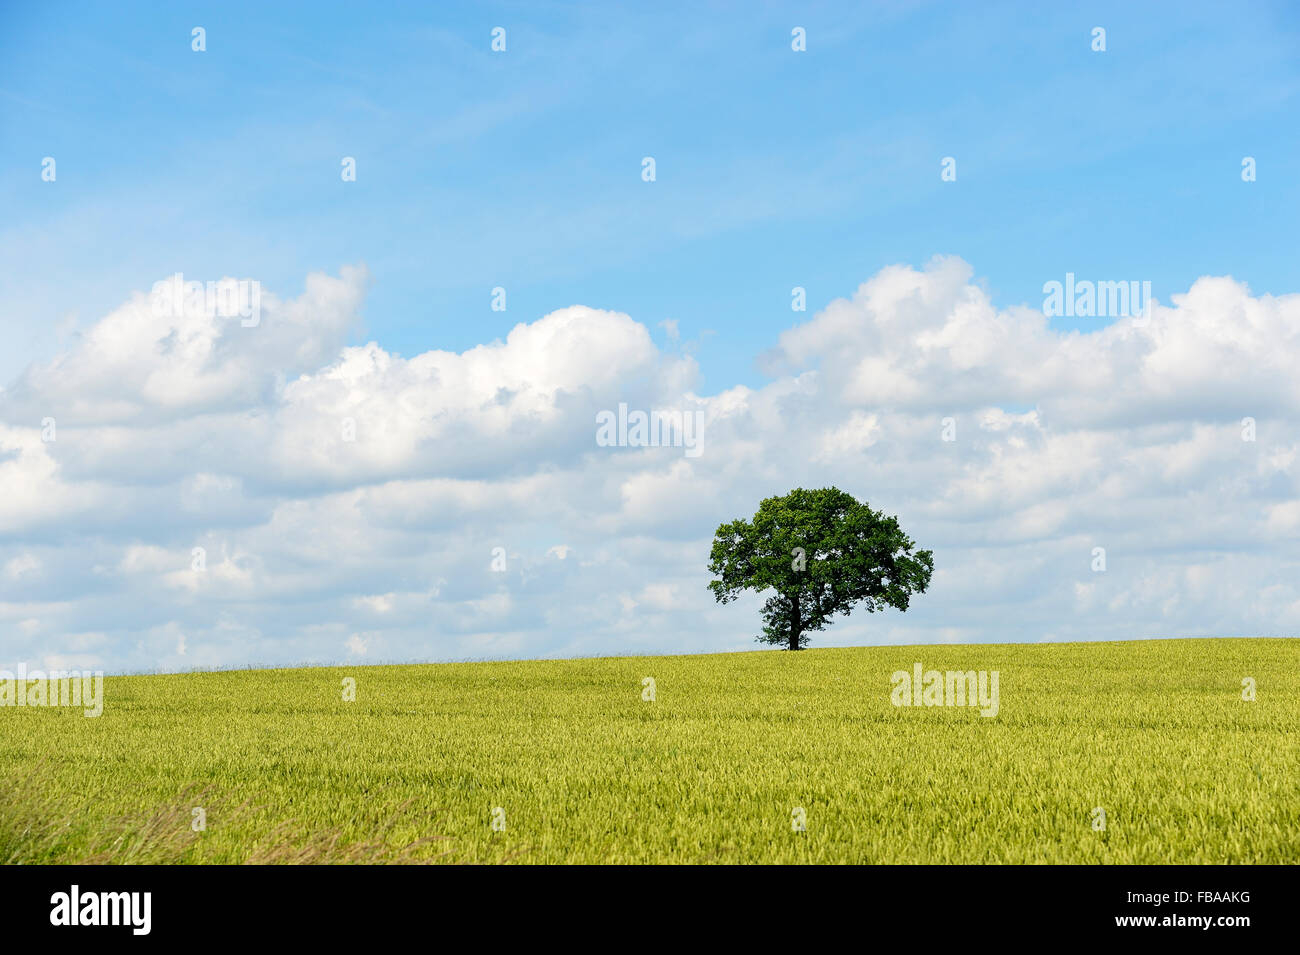 Denmark, Fyn, Single tree in field - Stock Image